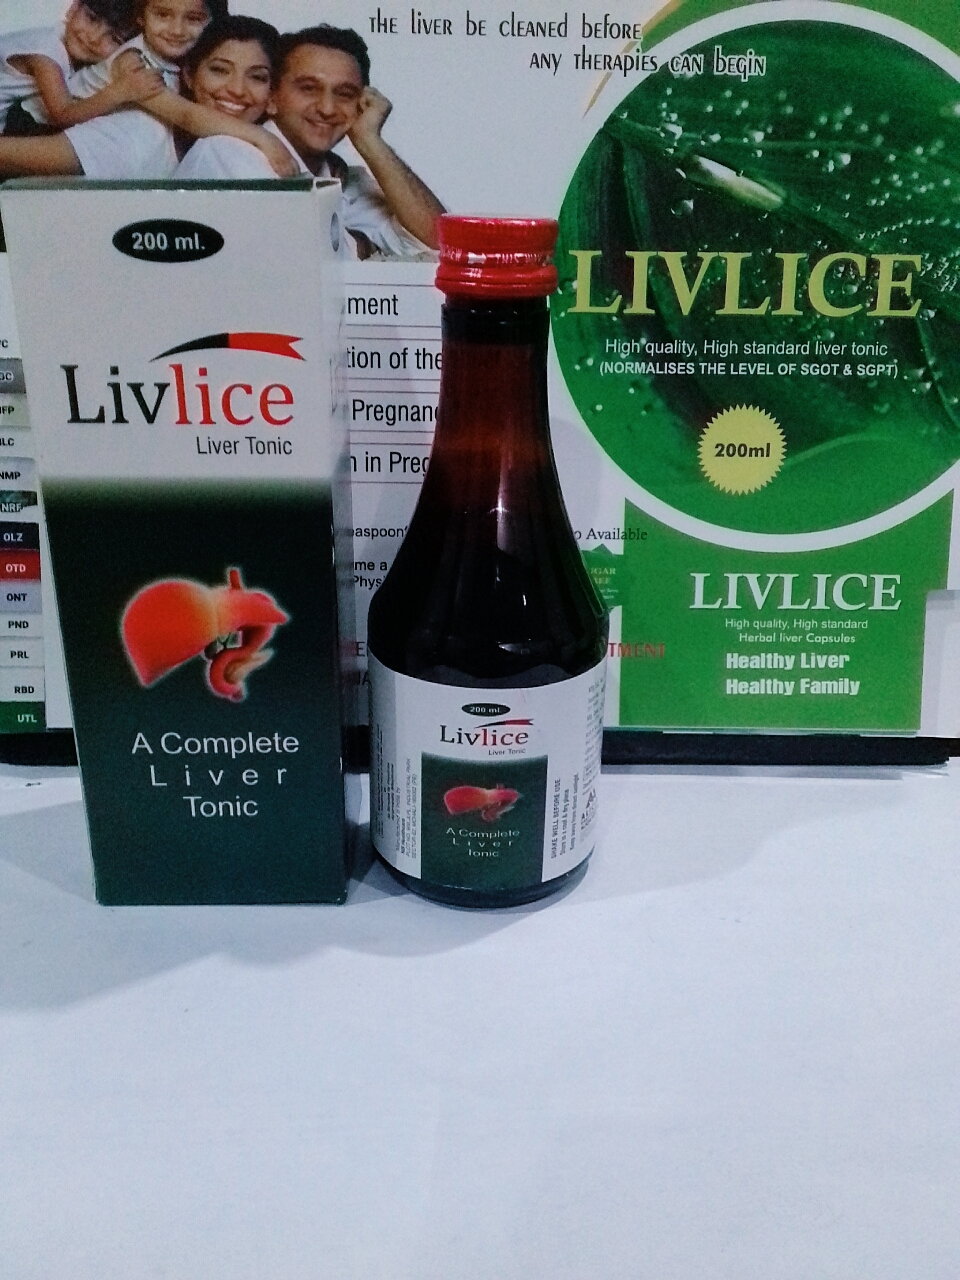 LIVLICE